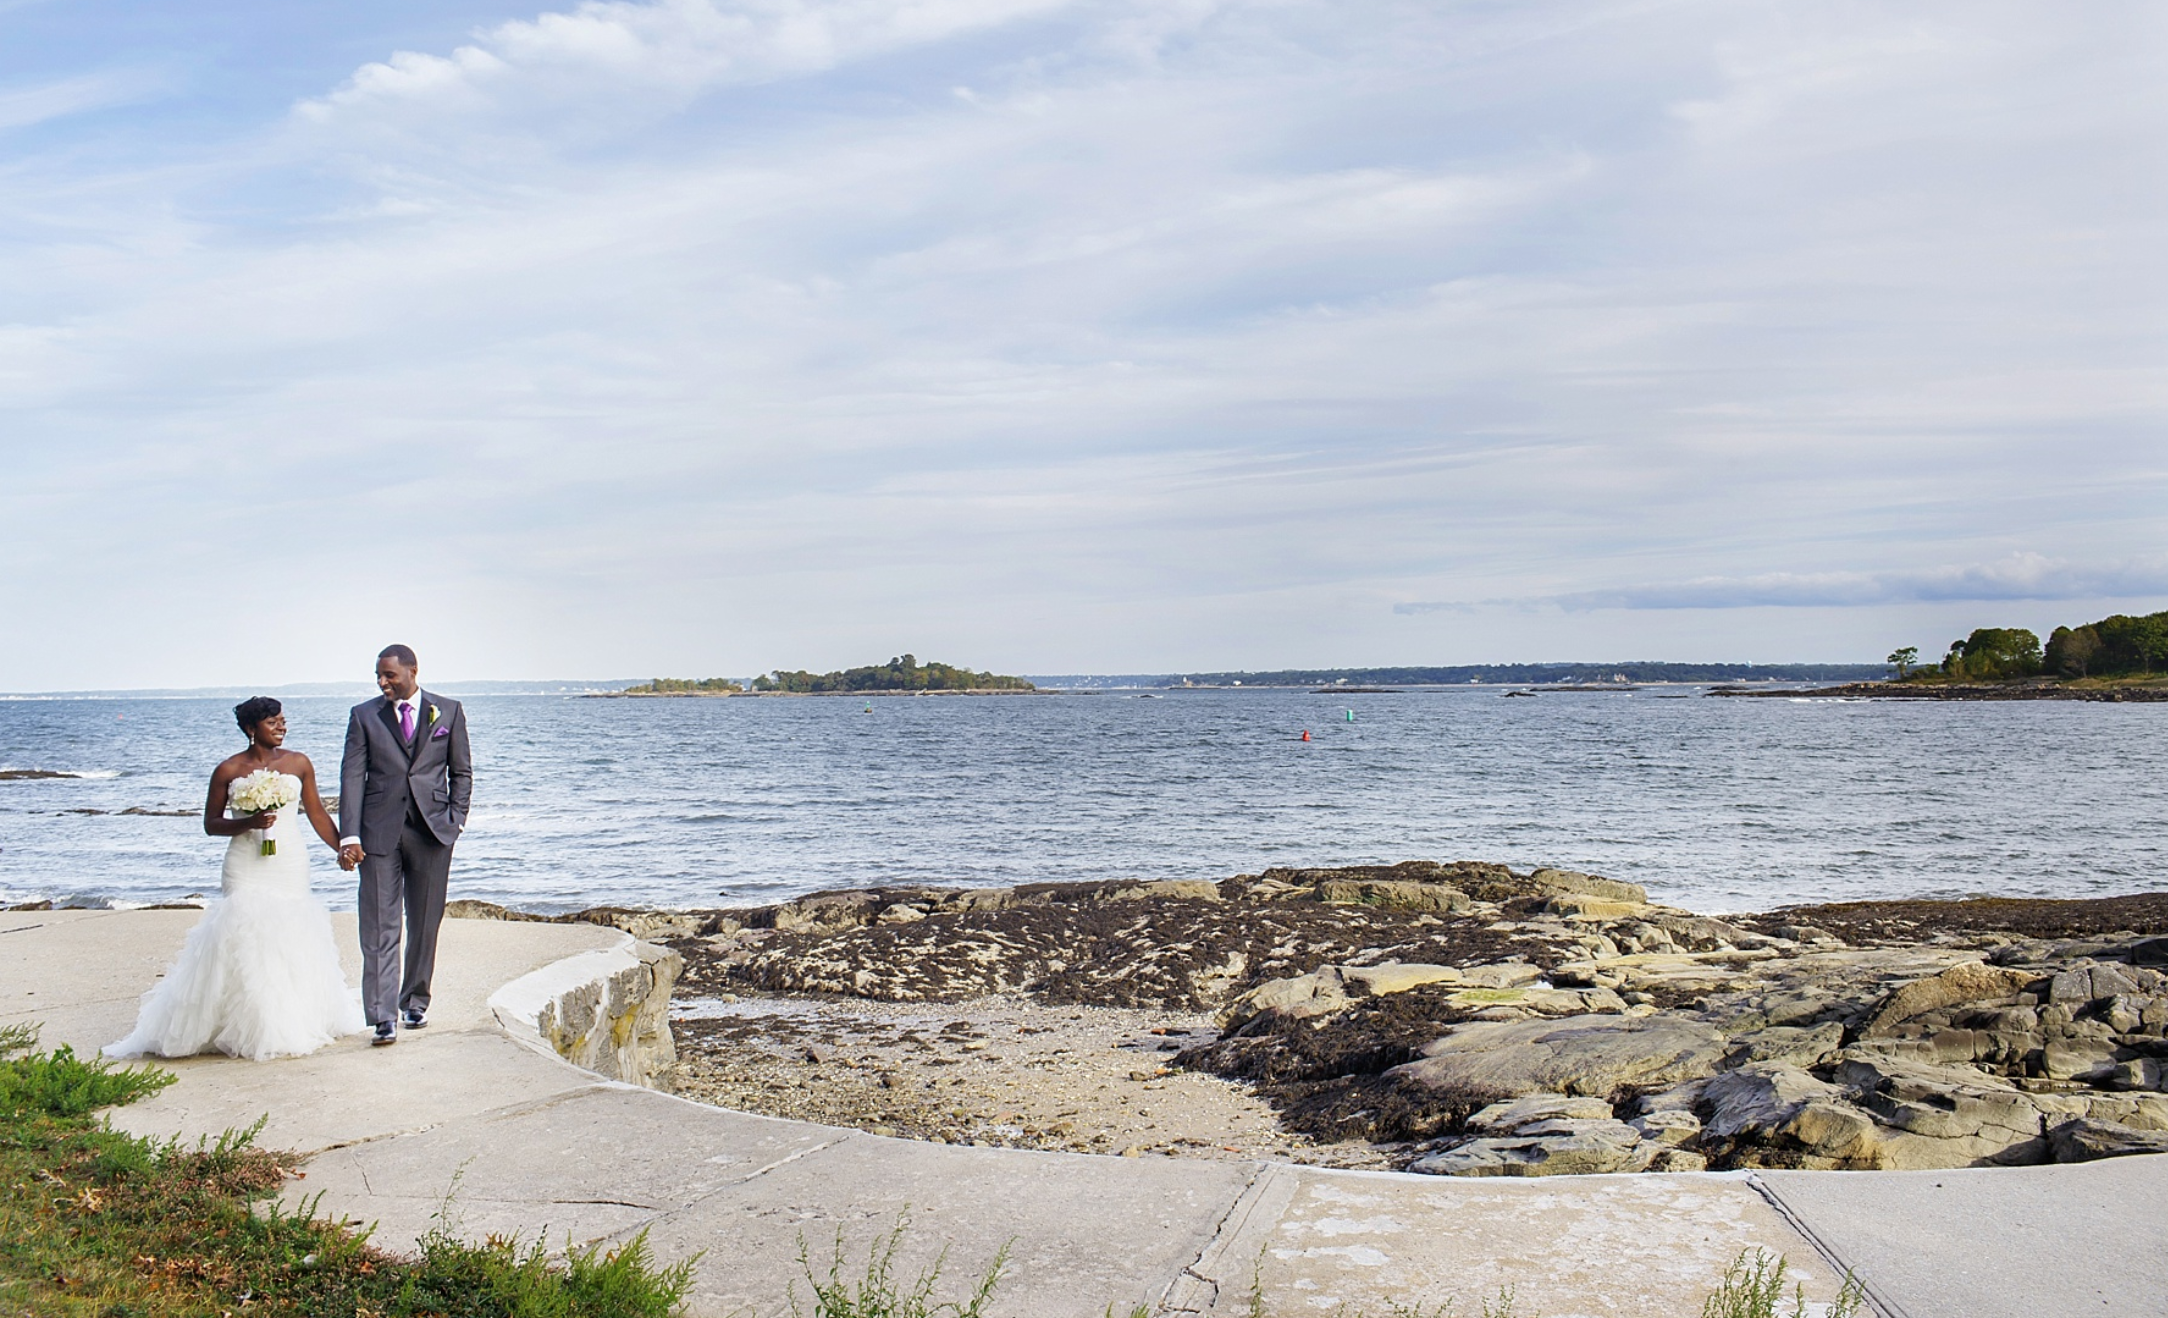 10-of-Our-Favorite-Waterfront-Wedding-Venues-in-the-U.S.-00014.png